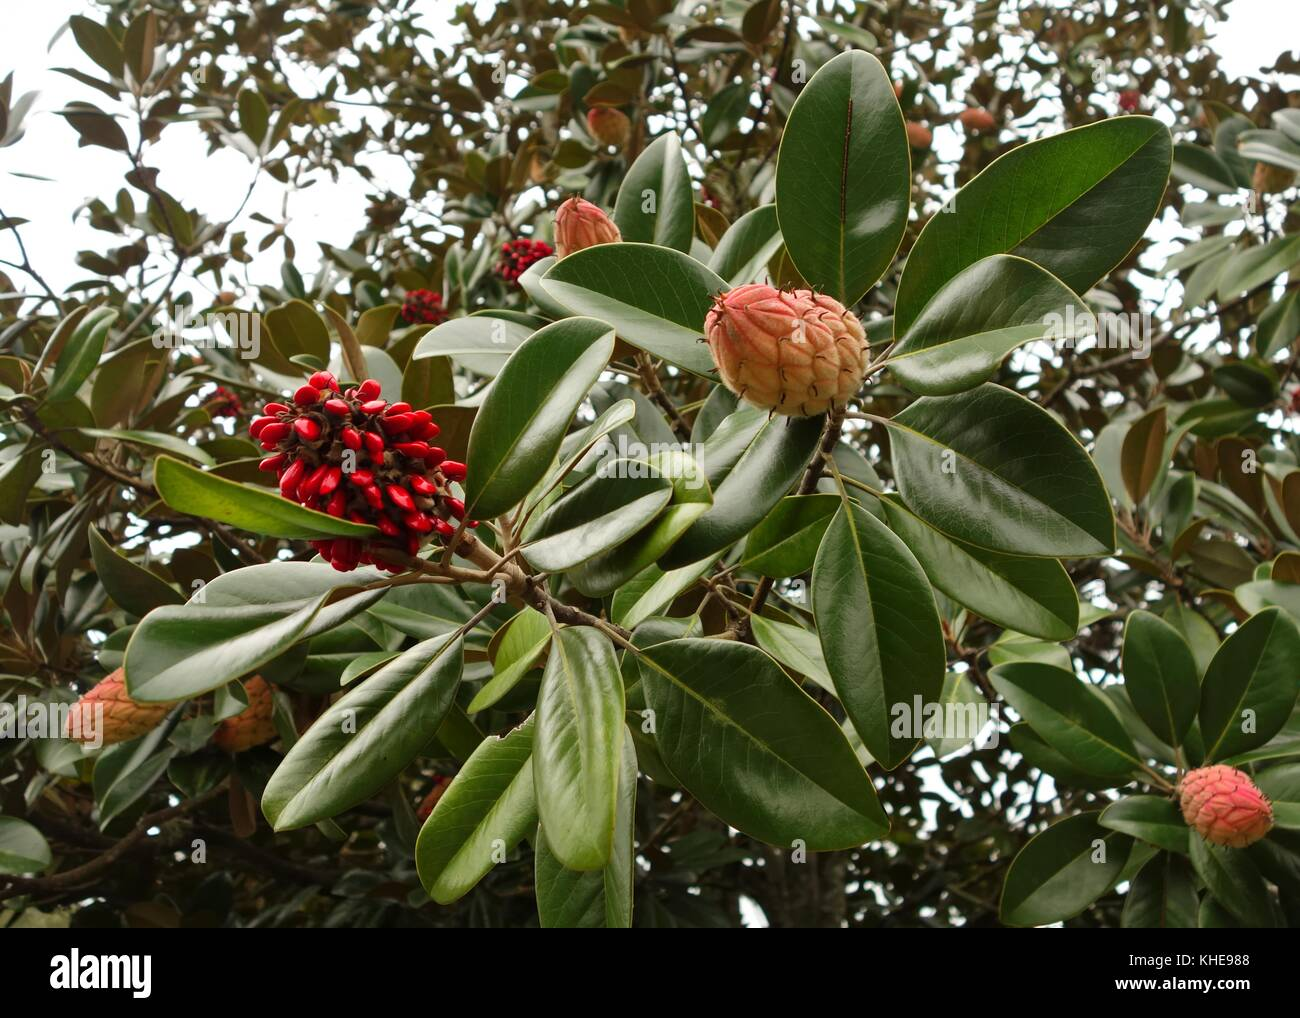 Magnolia tree leaves, seed pods and red seeds in Florida, USA Stock Photo